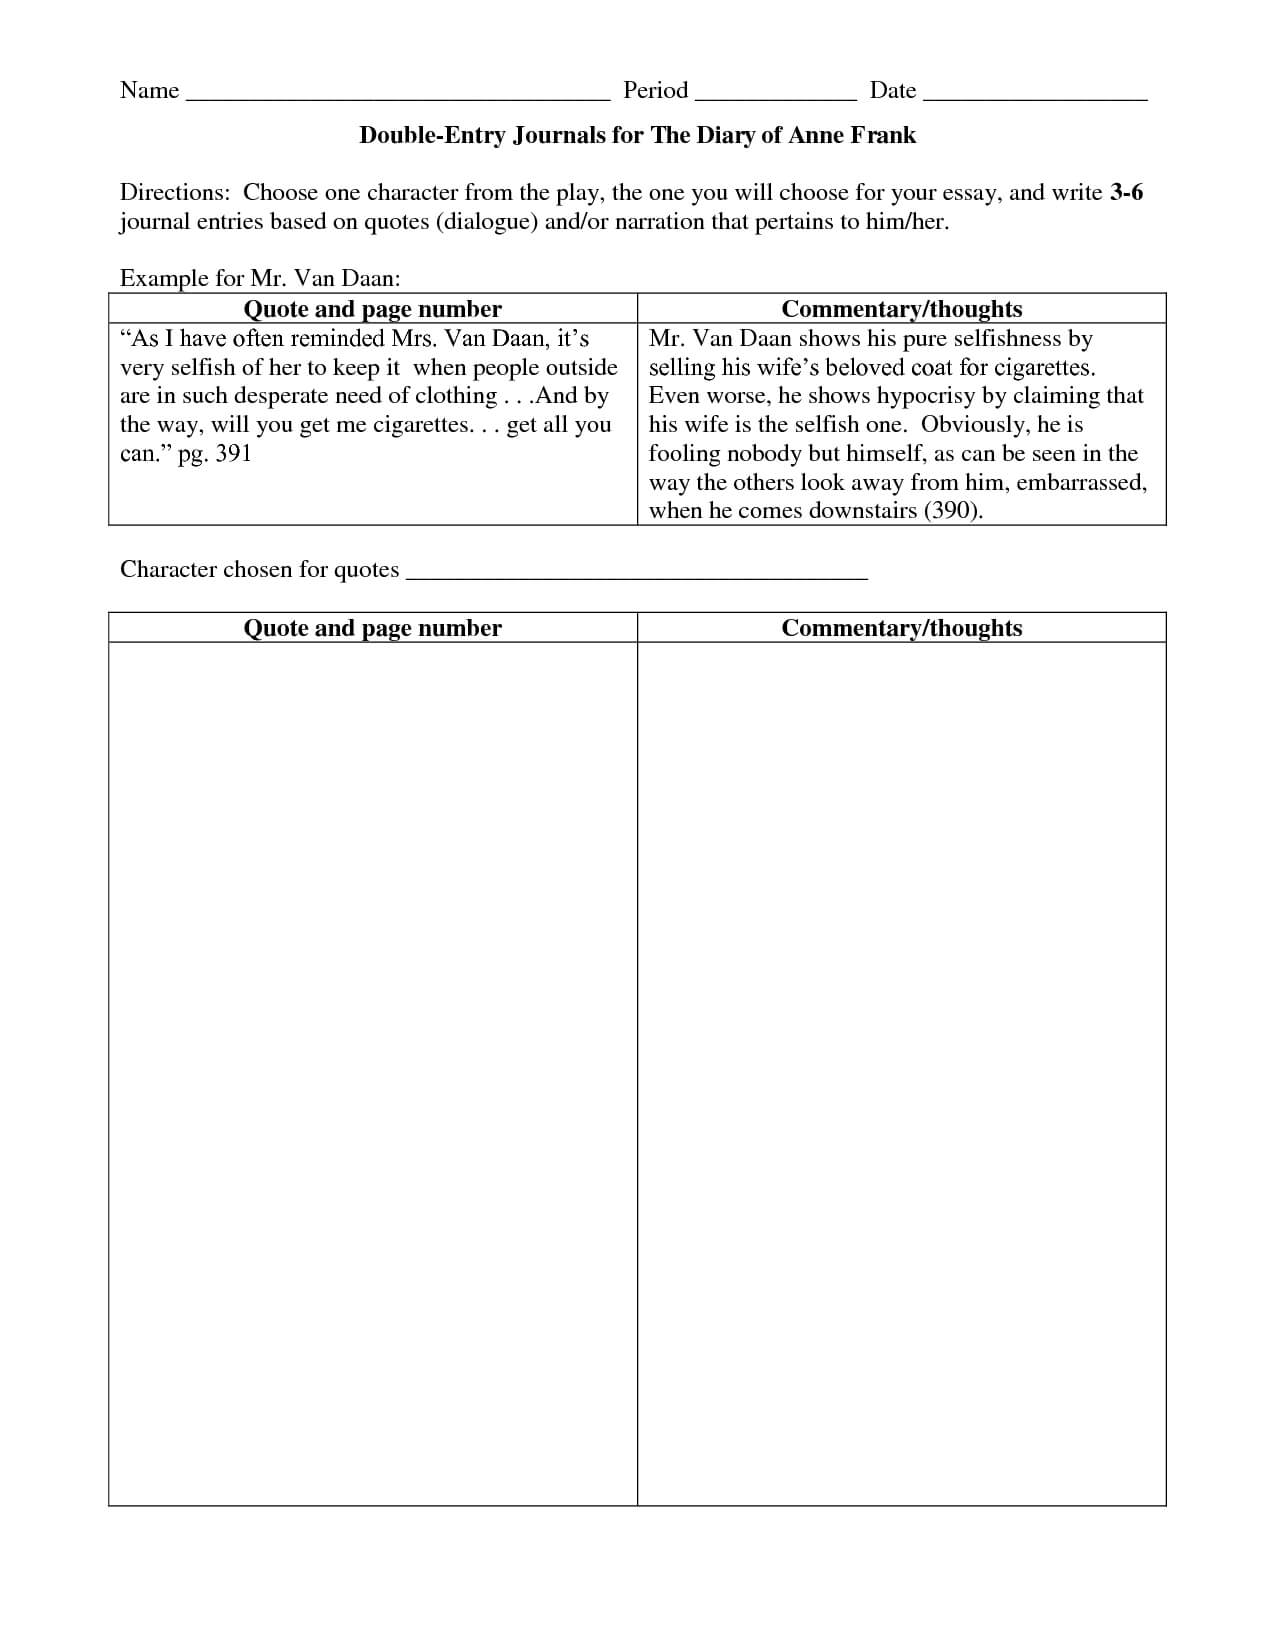 Double Entry Journals Examples | Double Entry Journal Regarding Double Entry Journal Template For Word